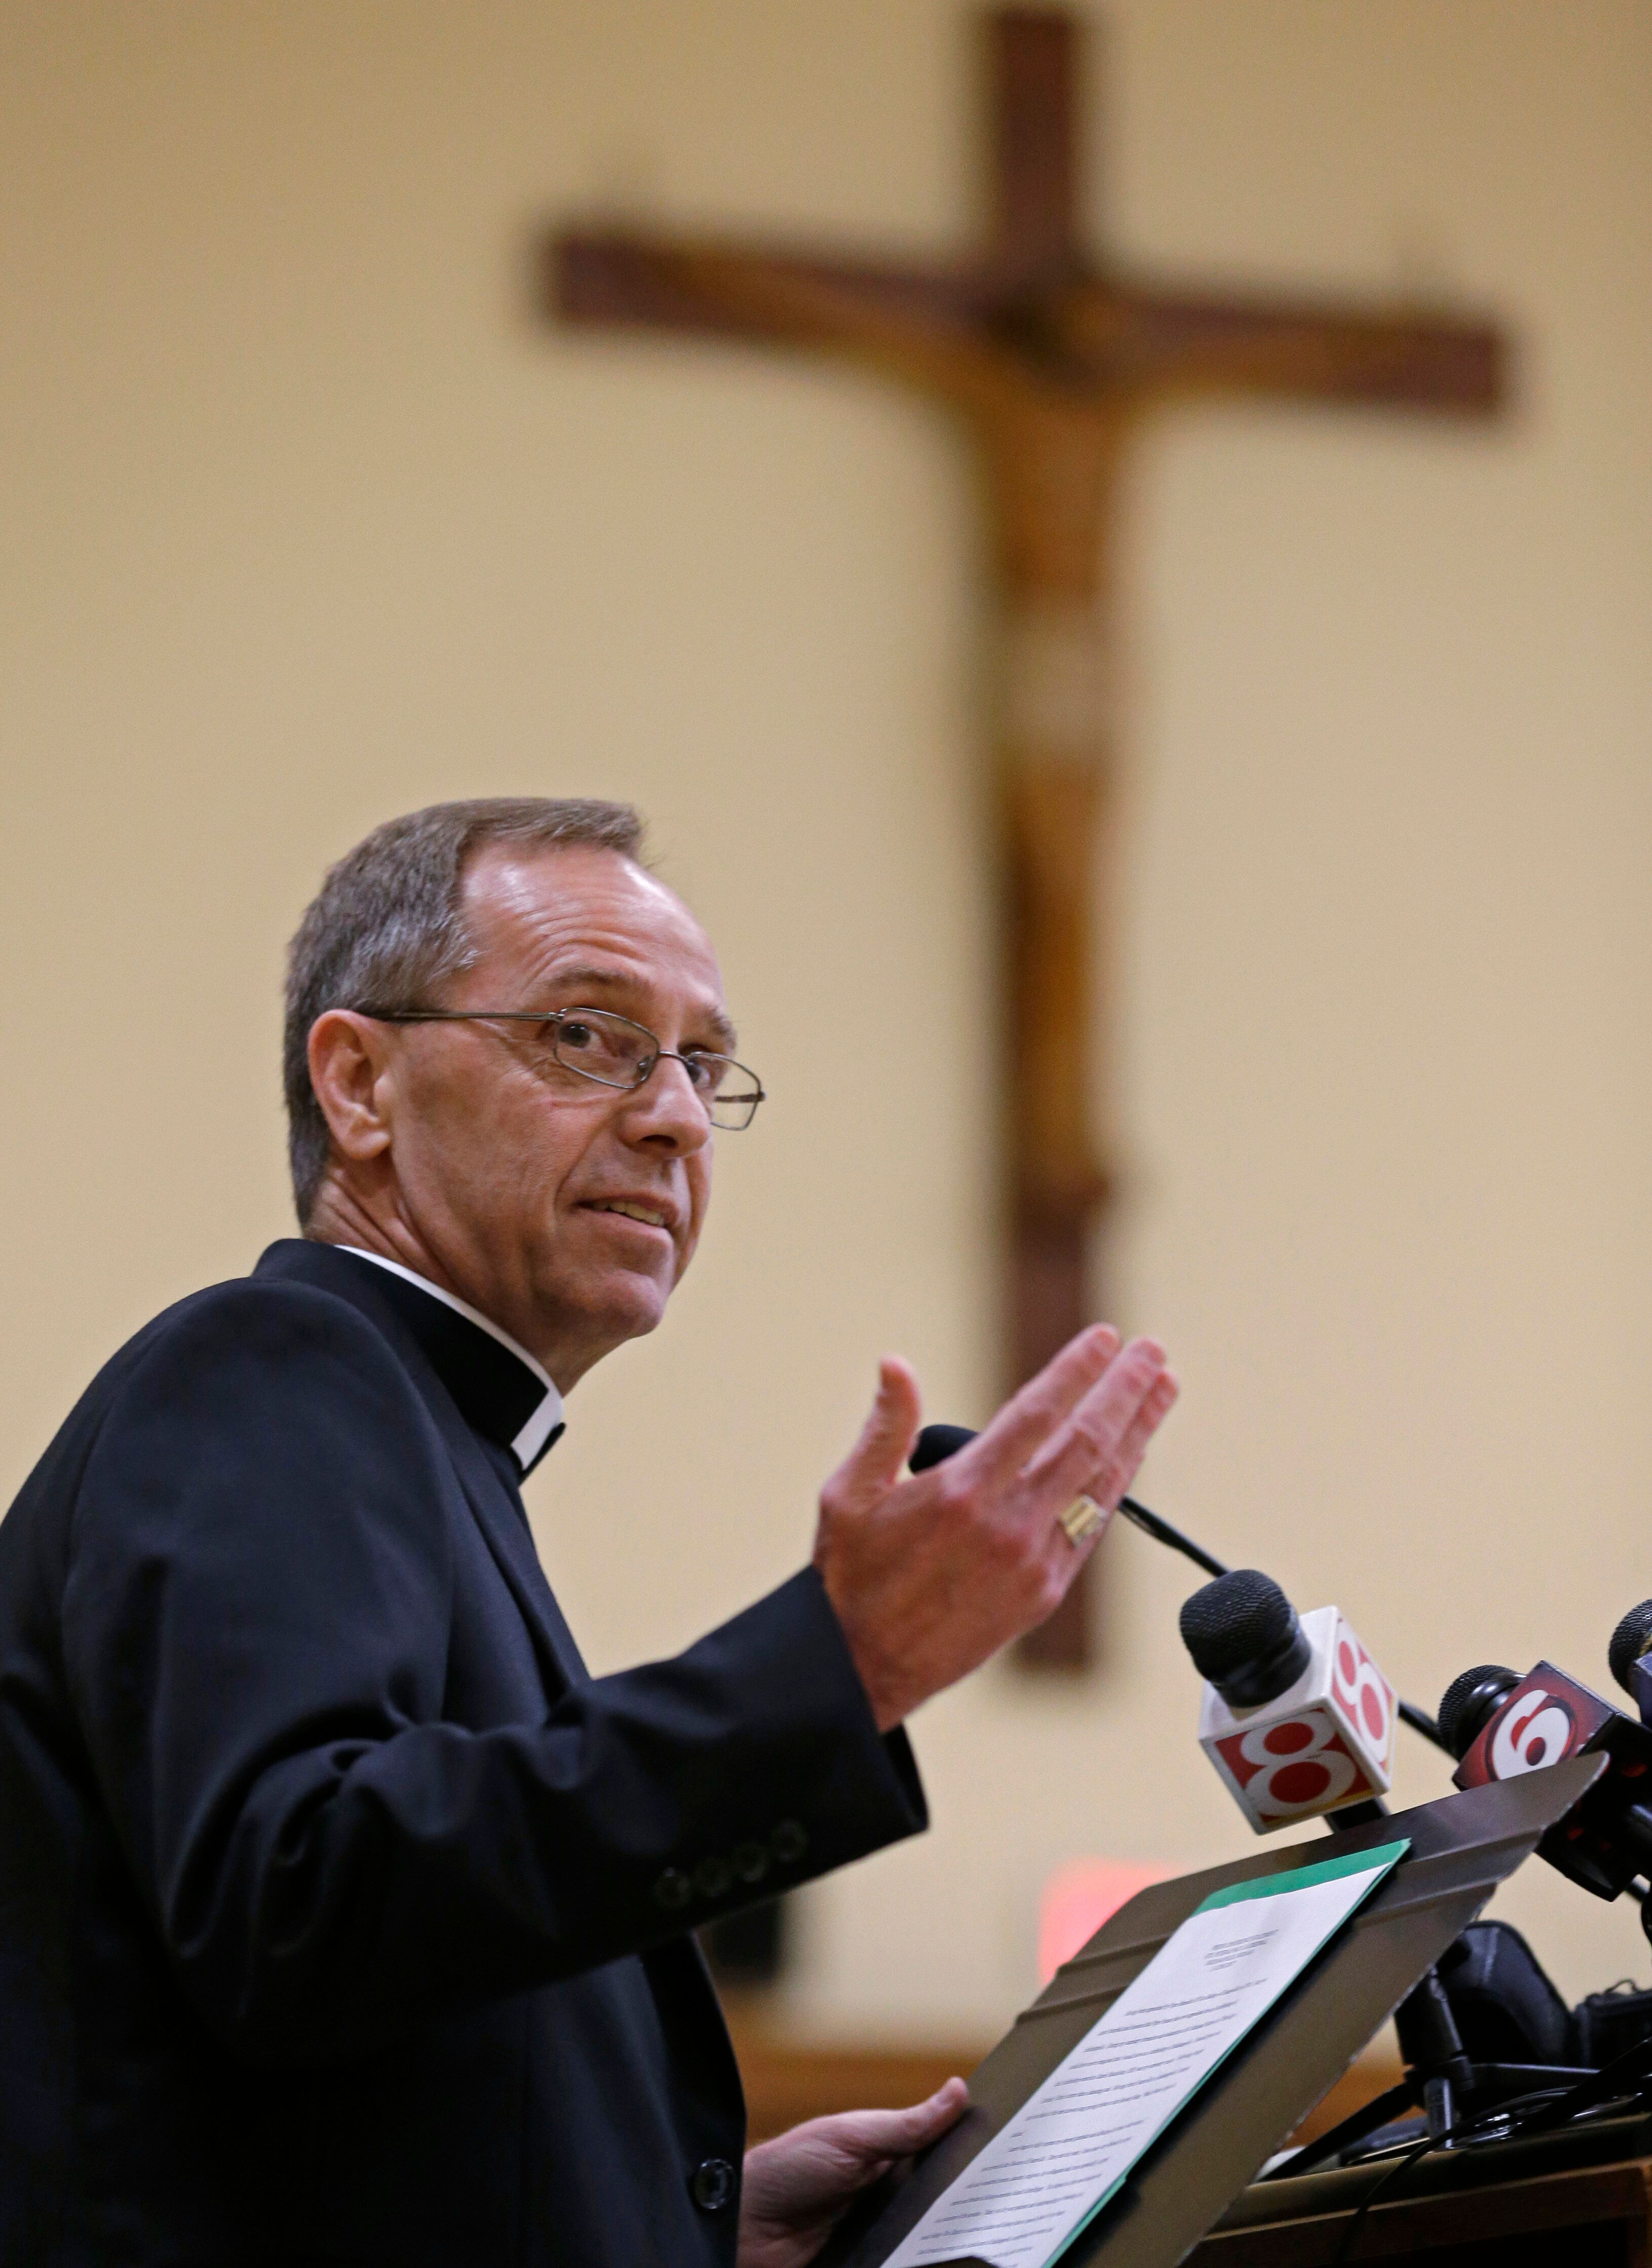 Archbishop Charles Thompson became leader of the Archdiocese of Indianapolis in 2017.